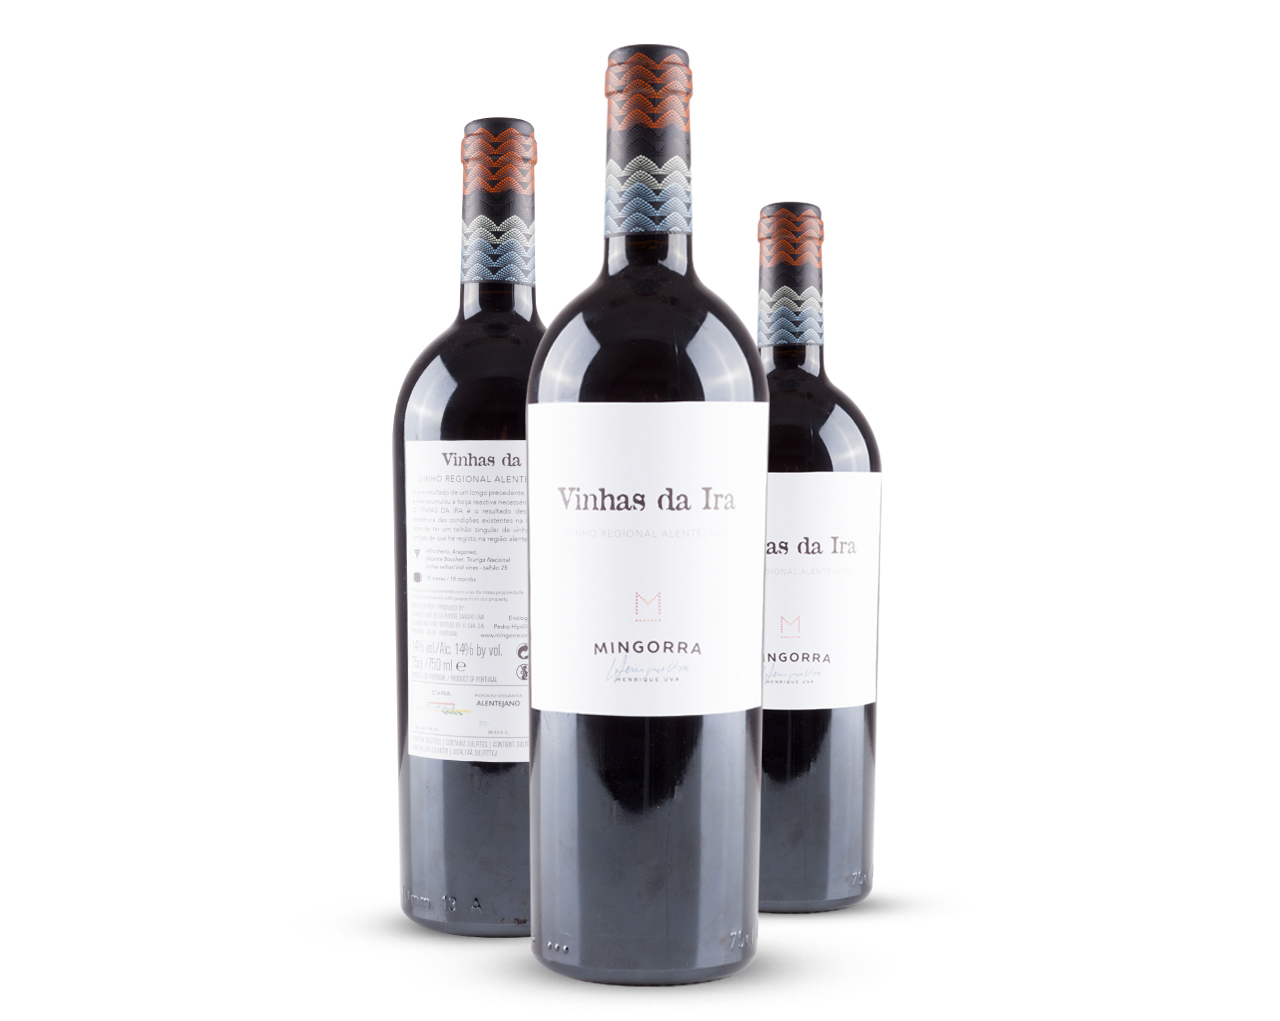 The Best Wines From Portugal  wines The Best Wines From Portugal 7 imagem galeria 3 2